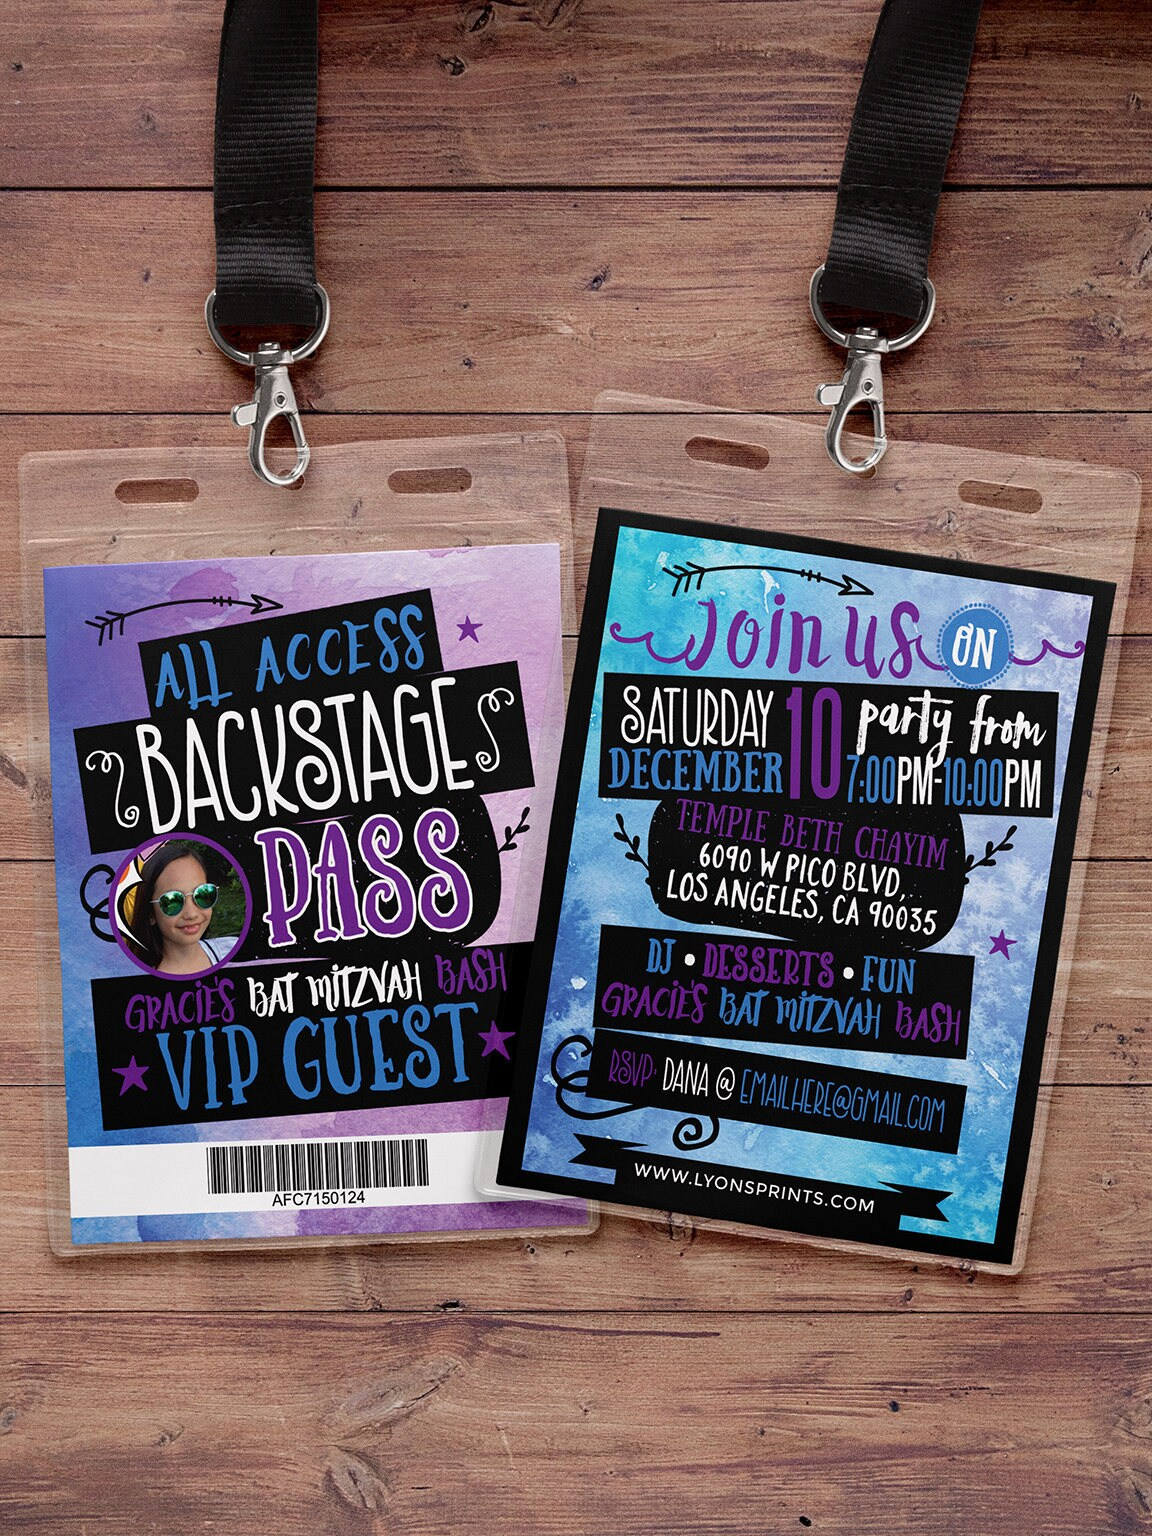 tie dye art party watercolor vip pass backstage pass vip invitation birthday invitation bat mitzvah lanyard rock star birthday